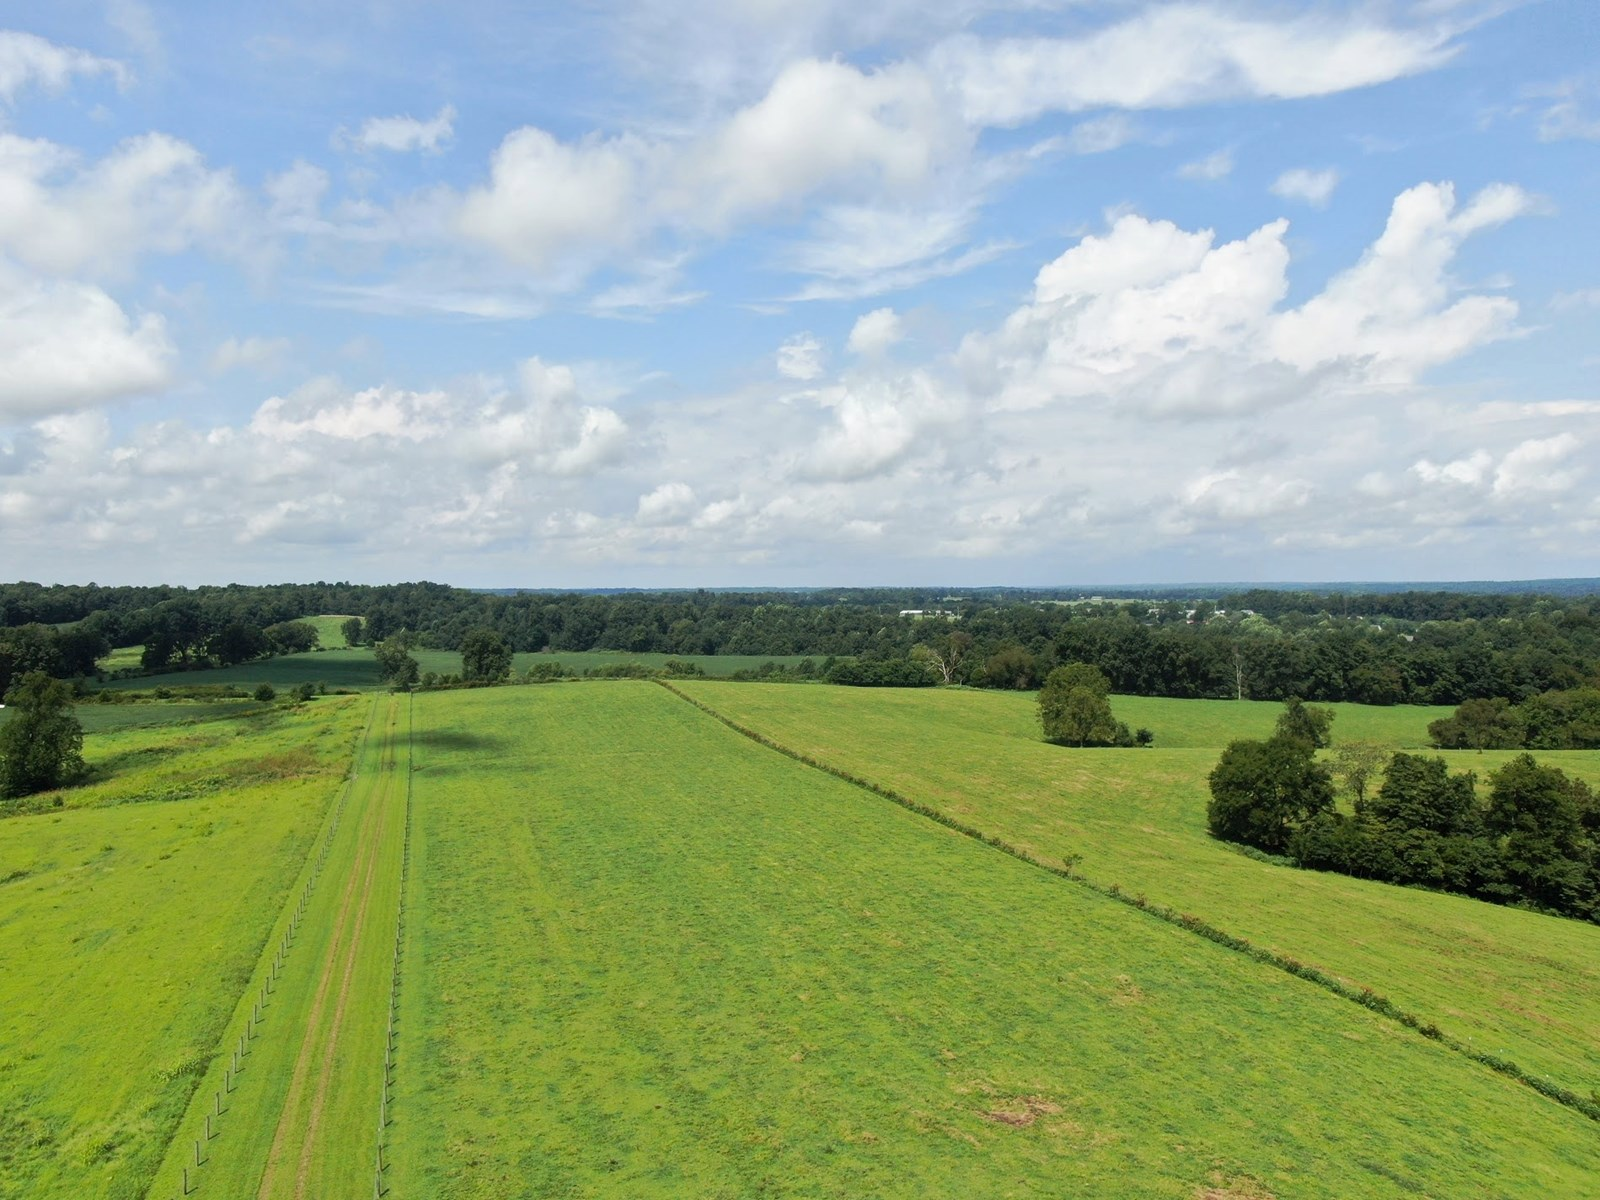 330 ACRE FARM for sale near Scottsville Ky.